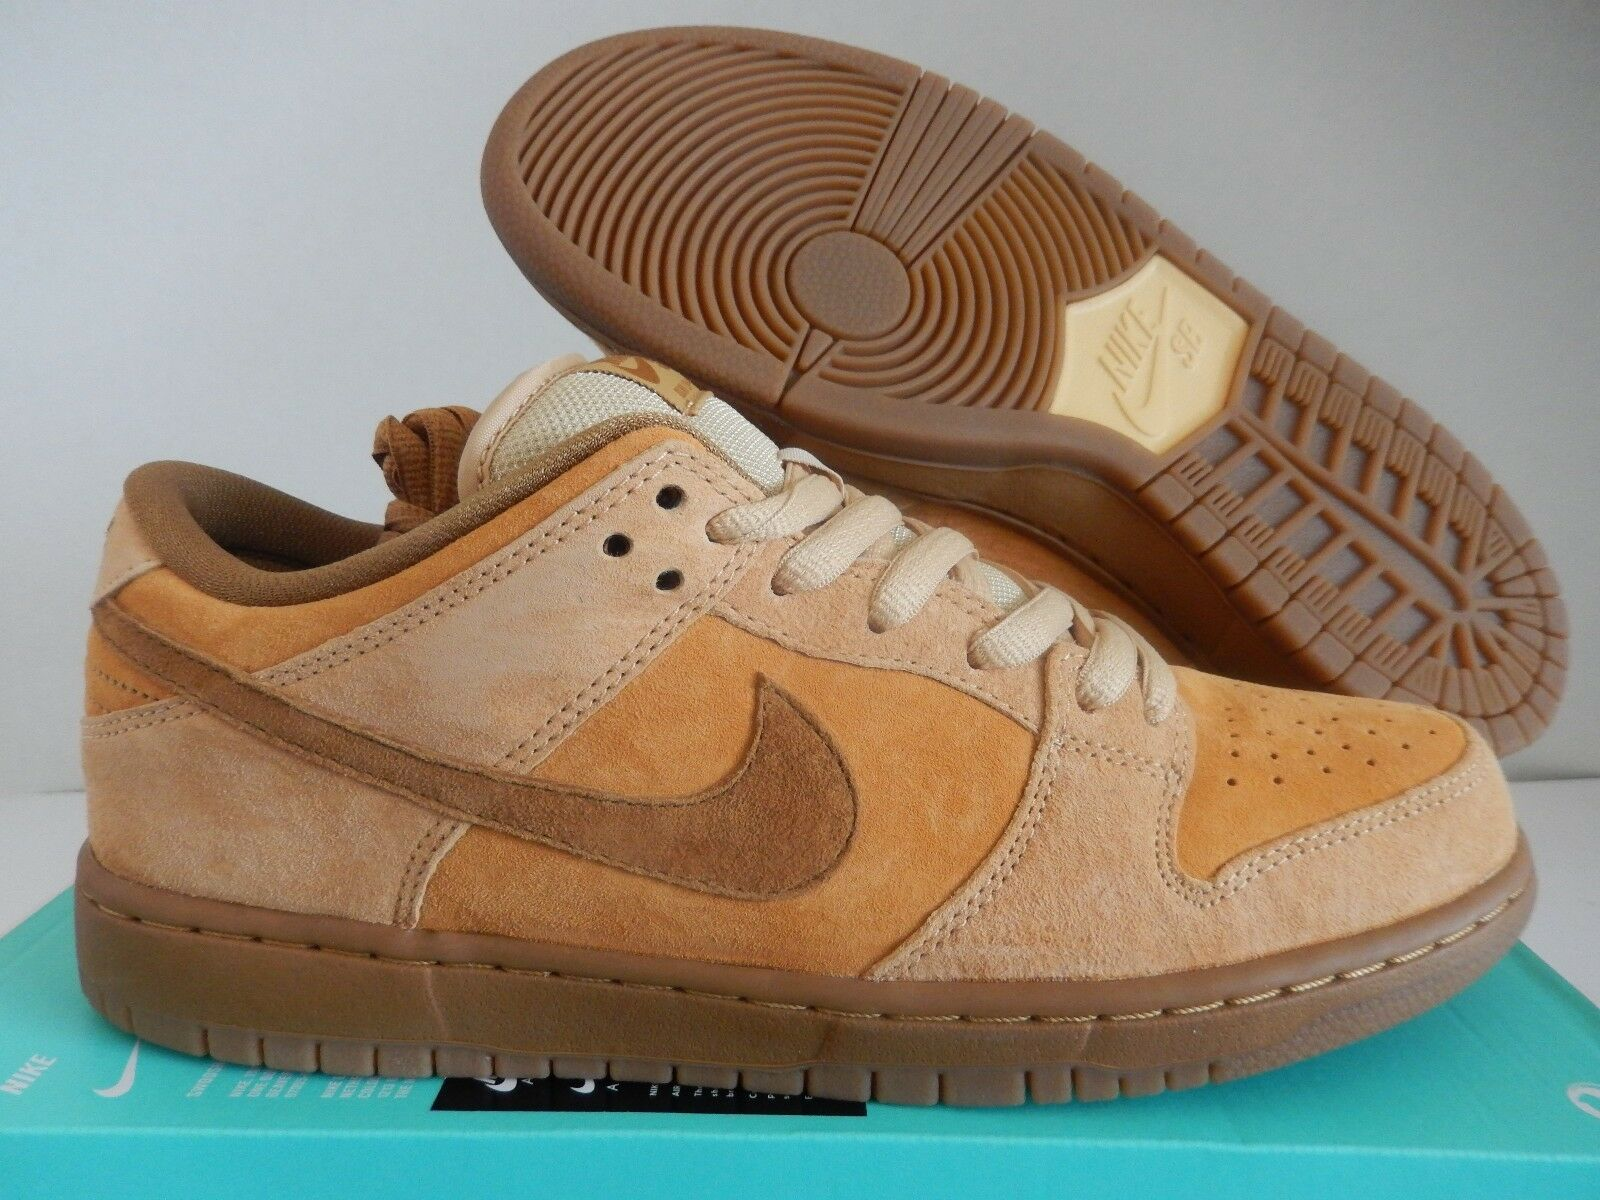 NIKE SB DUNK LOW TRD QS REESE FORBES DUNE-WHEAT-MED BROWN SZ 10 [883232-700]